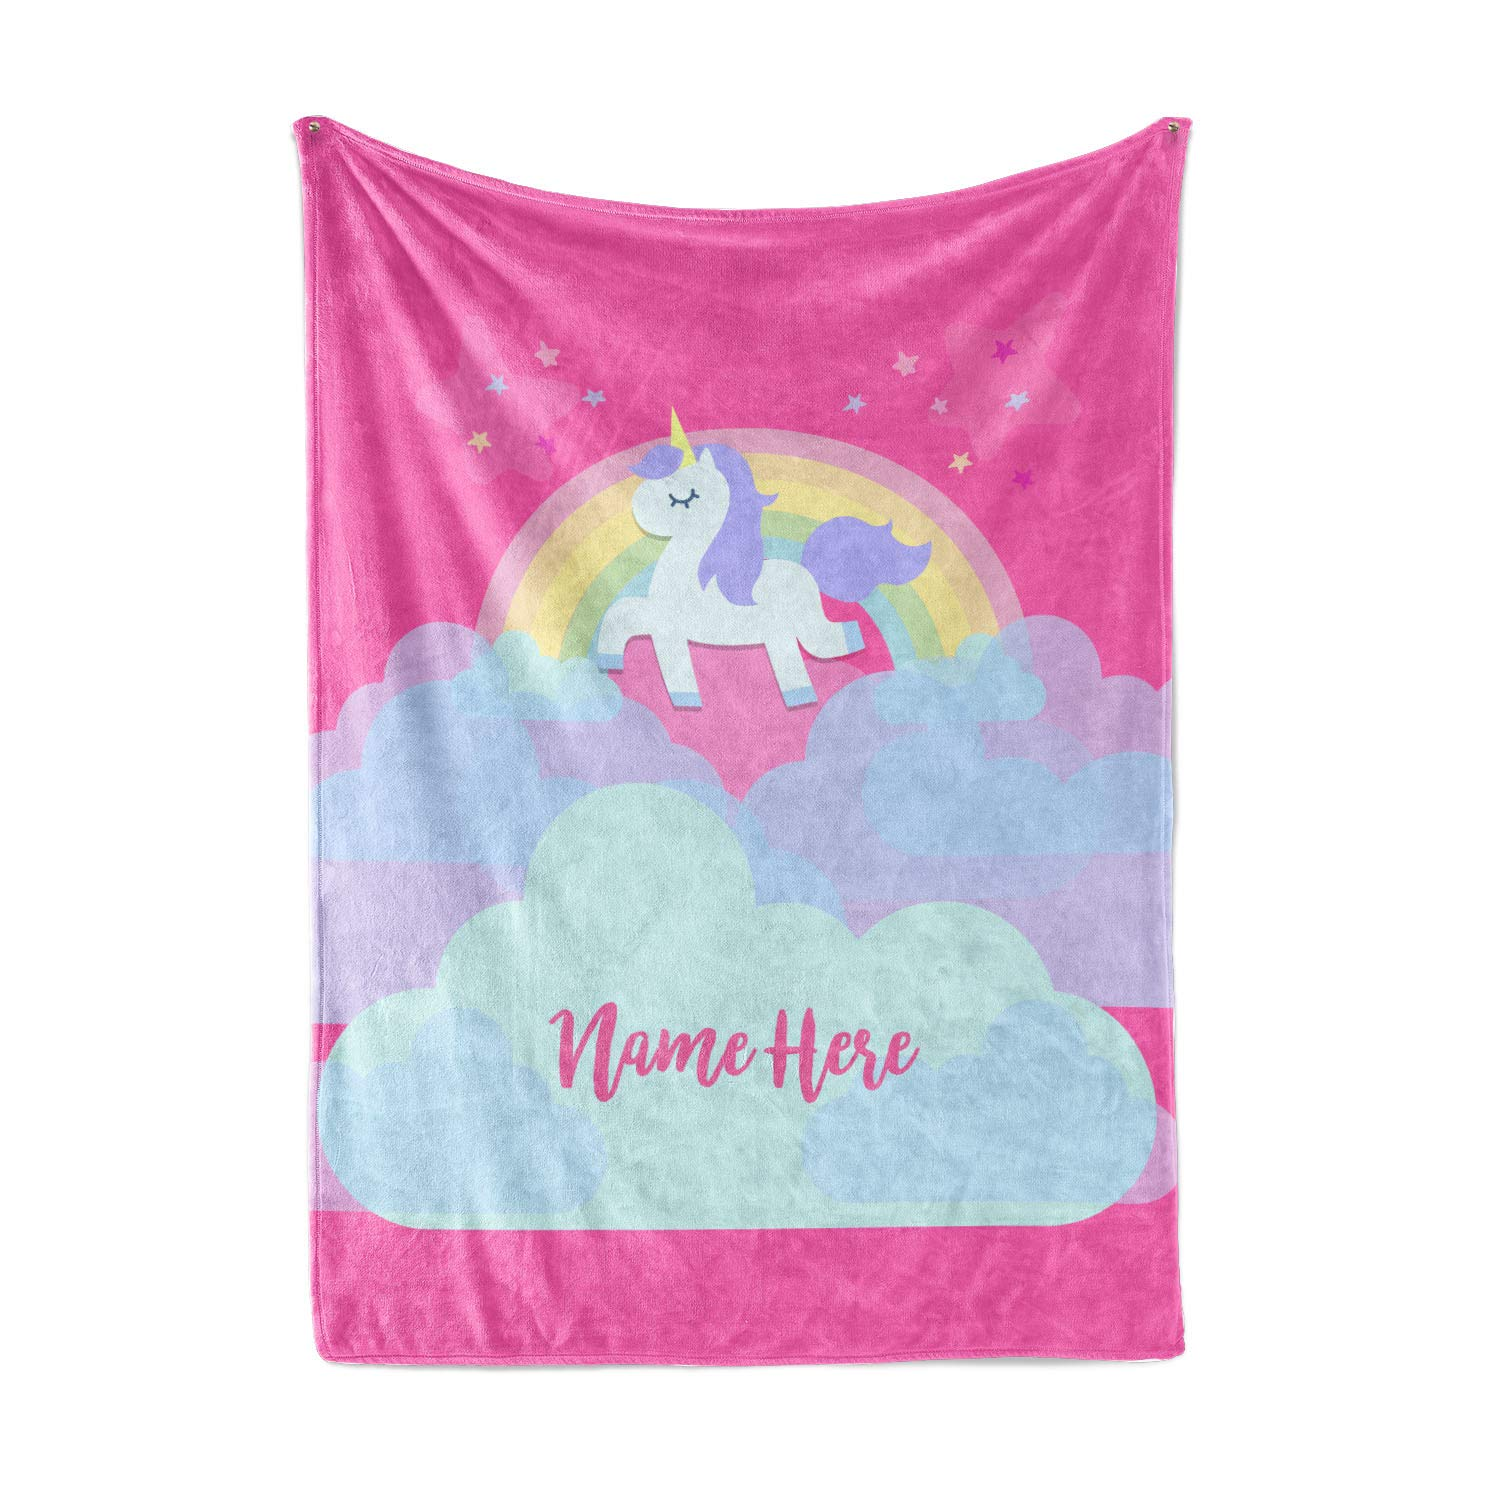 Personalized Magical Rainbow Unicorn Blanket for Kids, Teens, Girls, Women, Baby, Adult - Cute Pink Mink Fleece Plush Sherpa Throw Blankets Perfect as Cozy Comfy Presents (50'' x 60'' - Child) by Personalized Corner